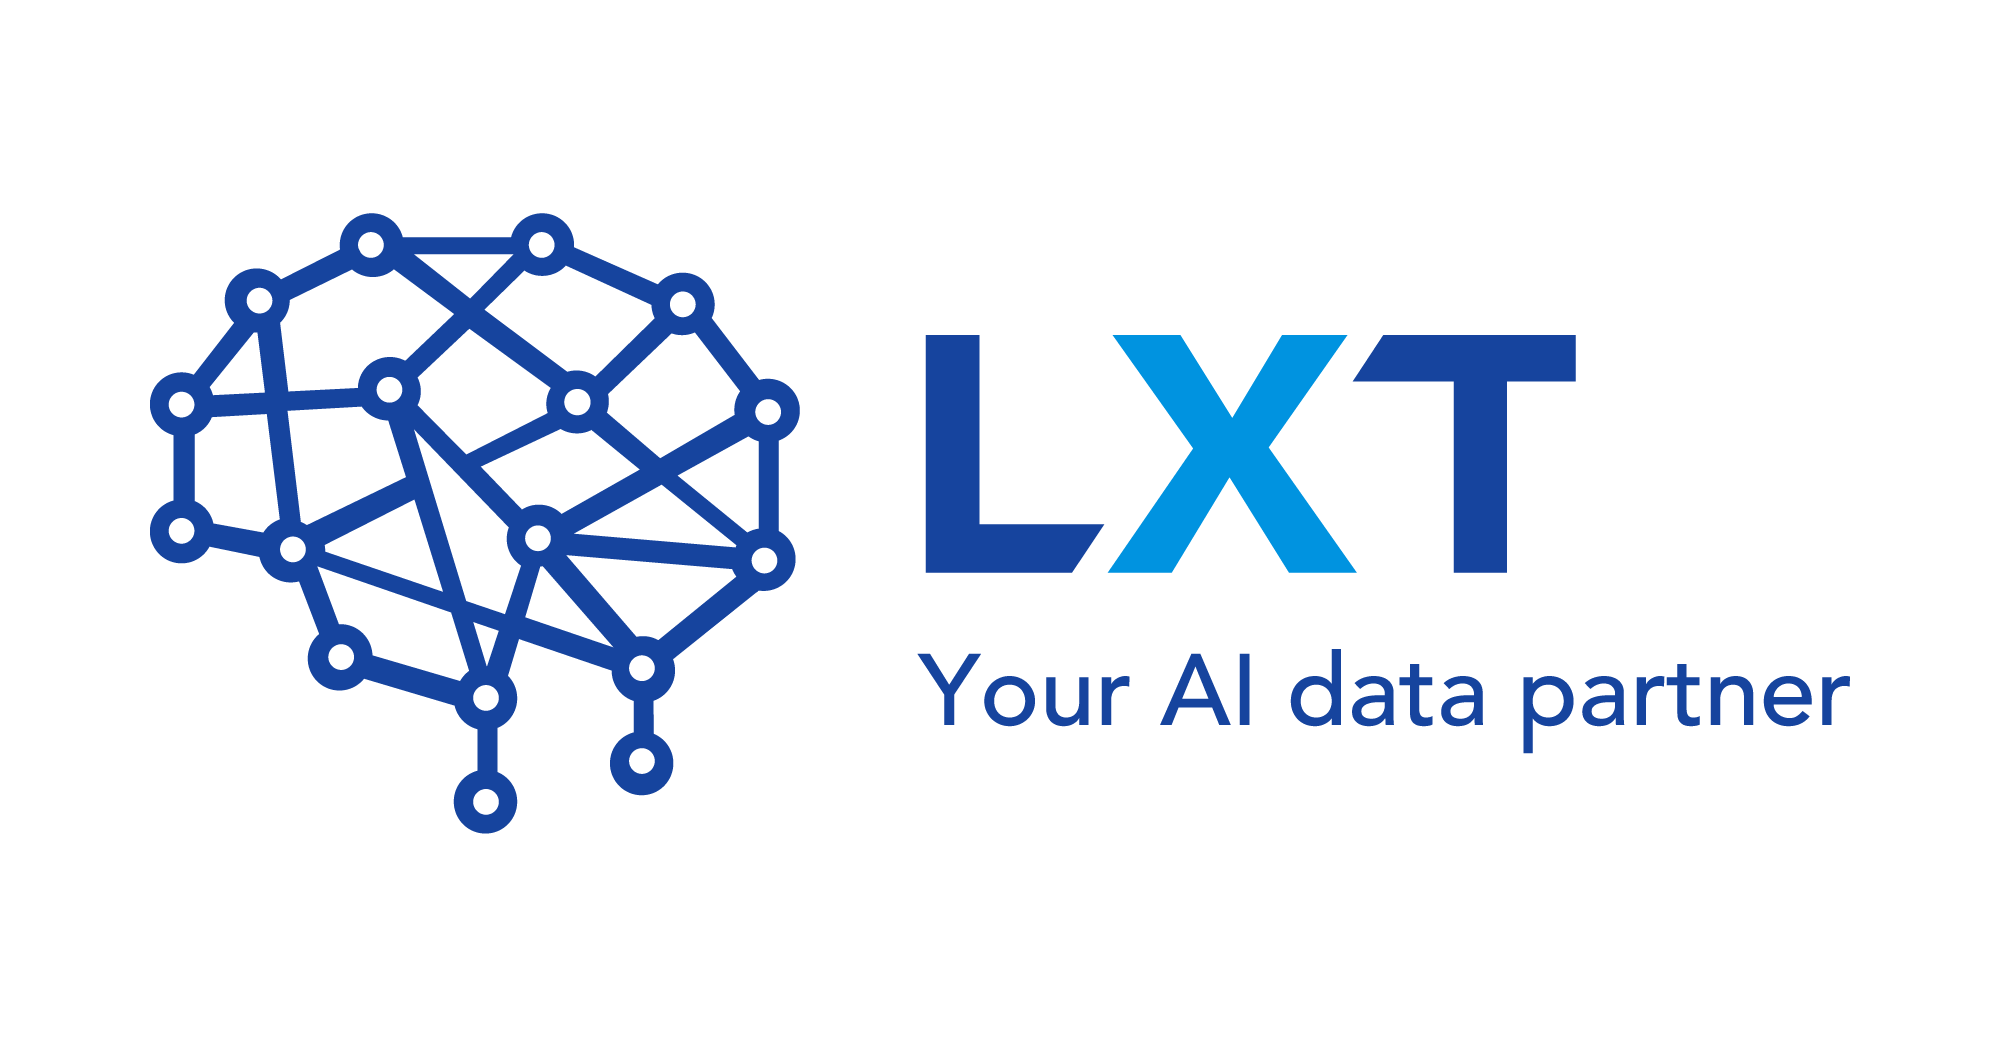 صورة Job: Project Manager at LxT in Giza, Egypt